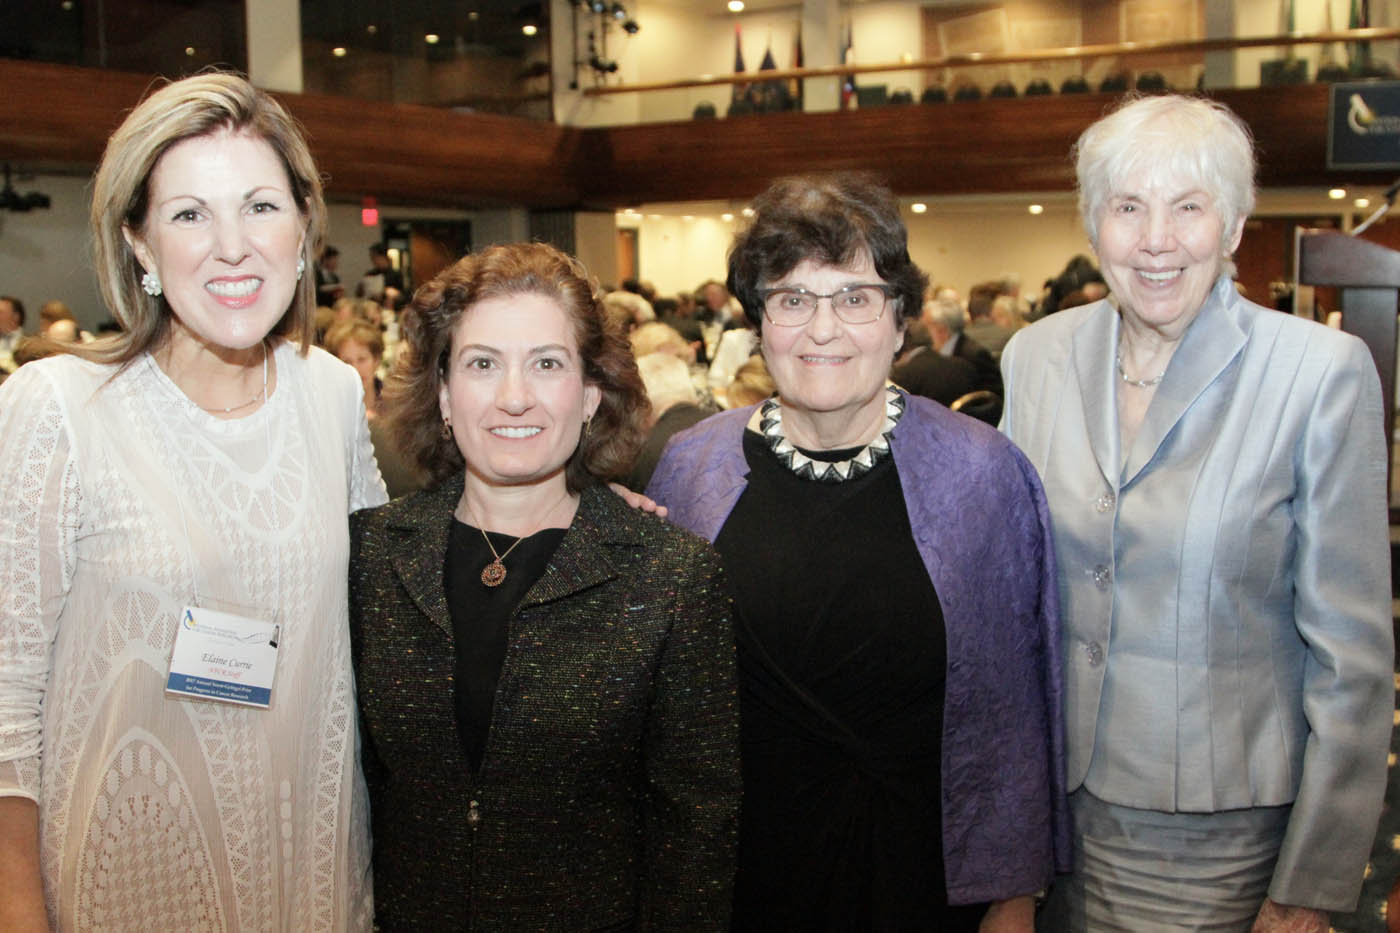 NFCR's Elaine Currie with supporters Stefanie Smith and Harriet Neschek, along with NFCR-funded scientist Dr. Susan Horwitz